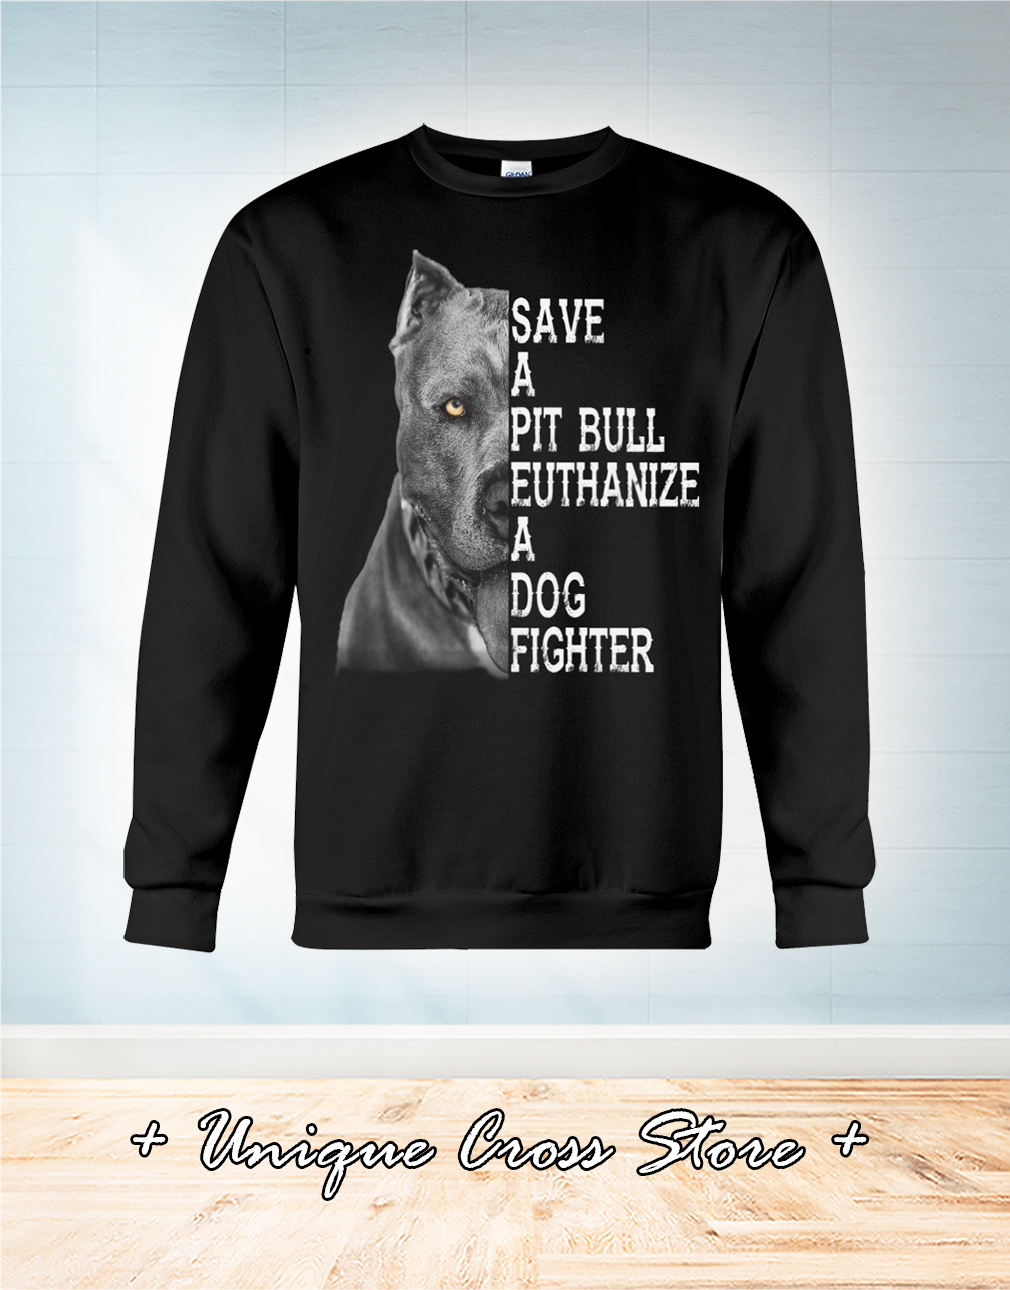 Save A Pit Bull Euthanize A Dog Fighter sweater